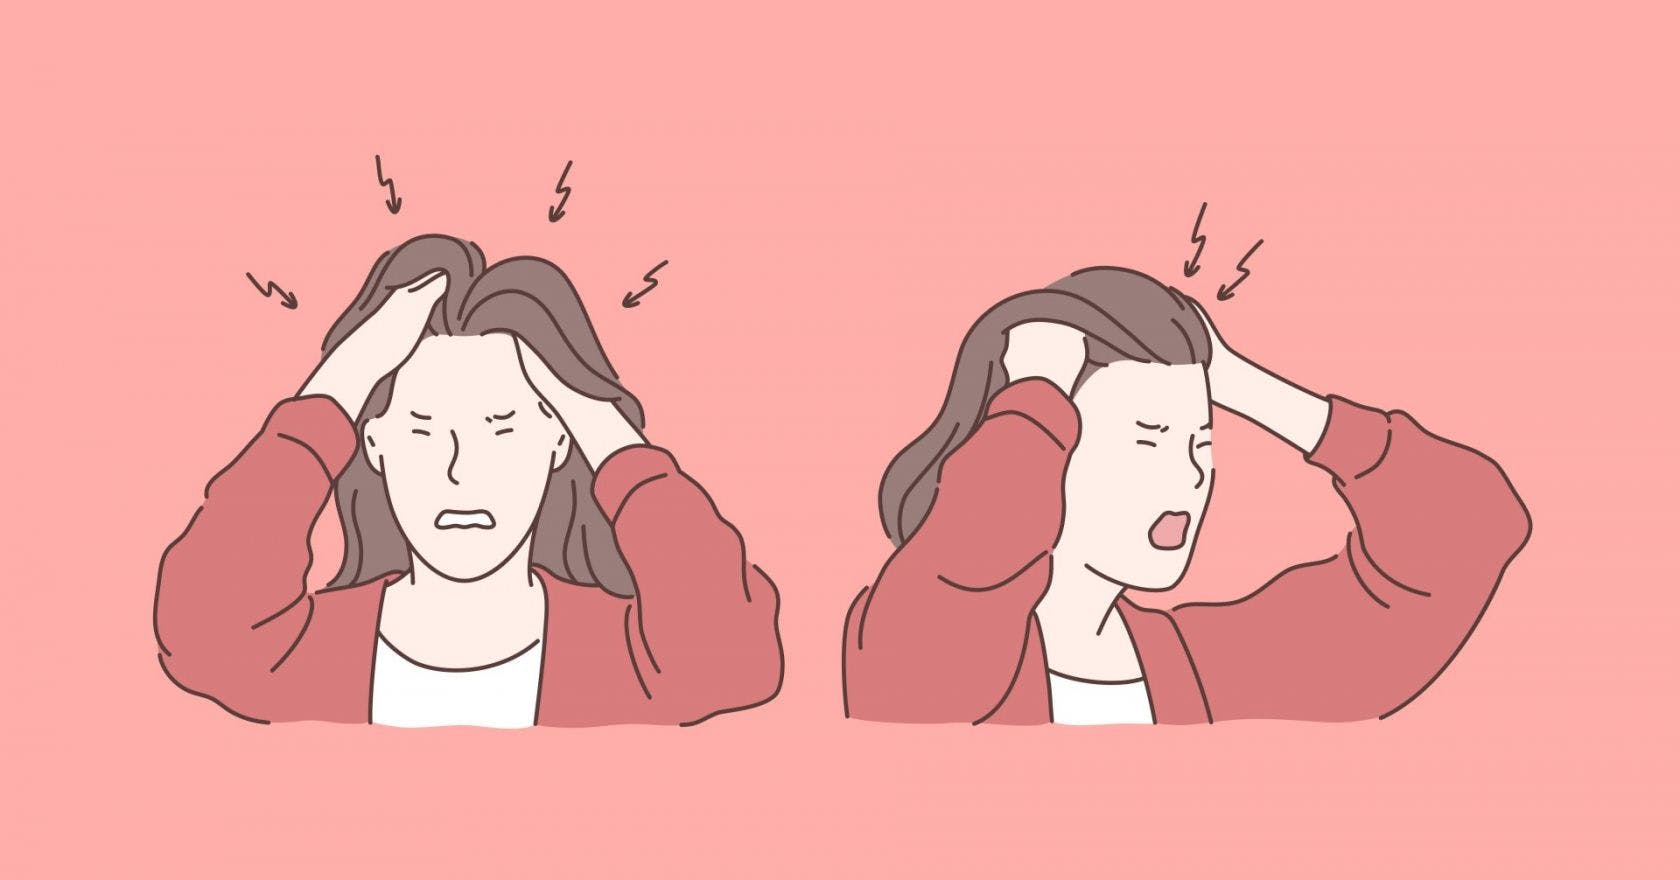 How to stay calm during confrontation if things start to get heated